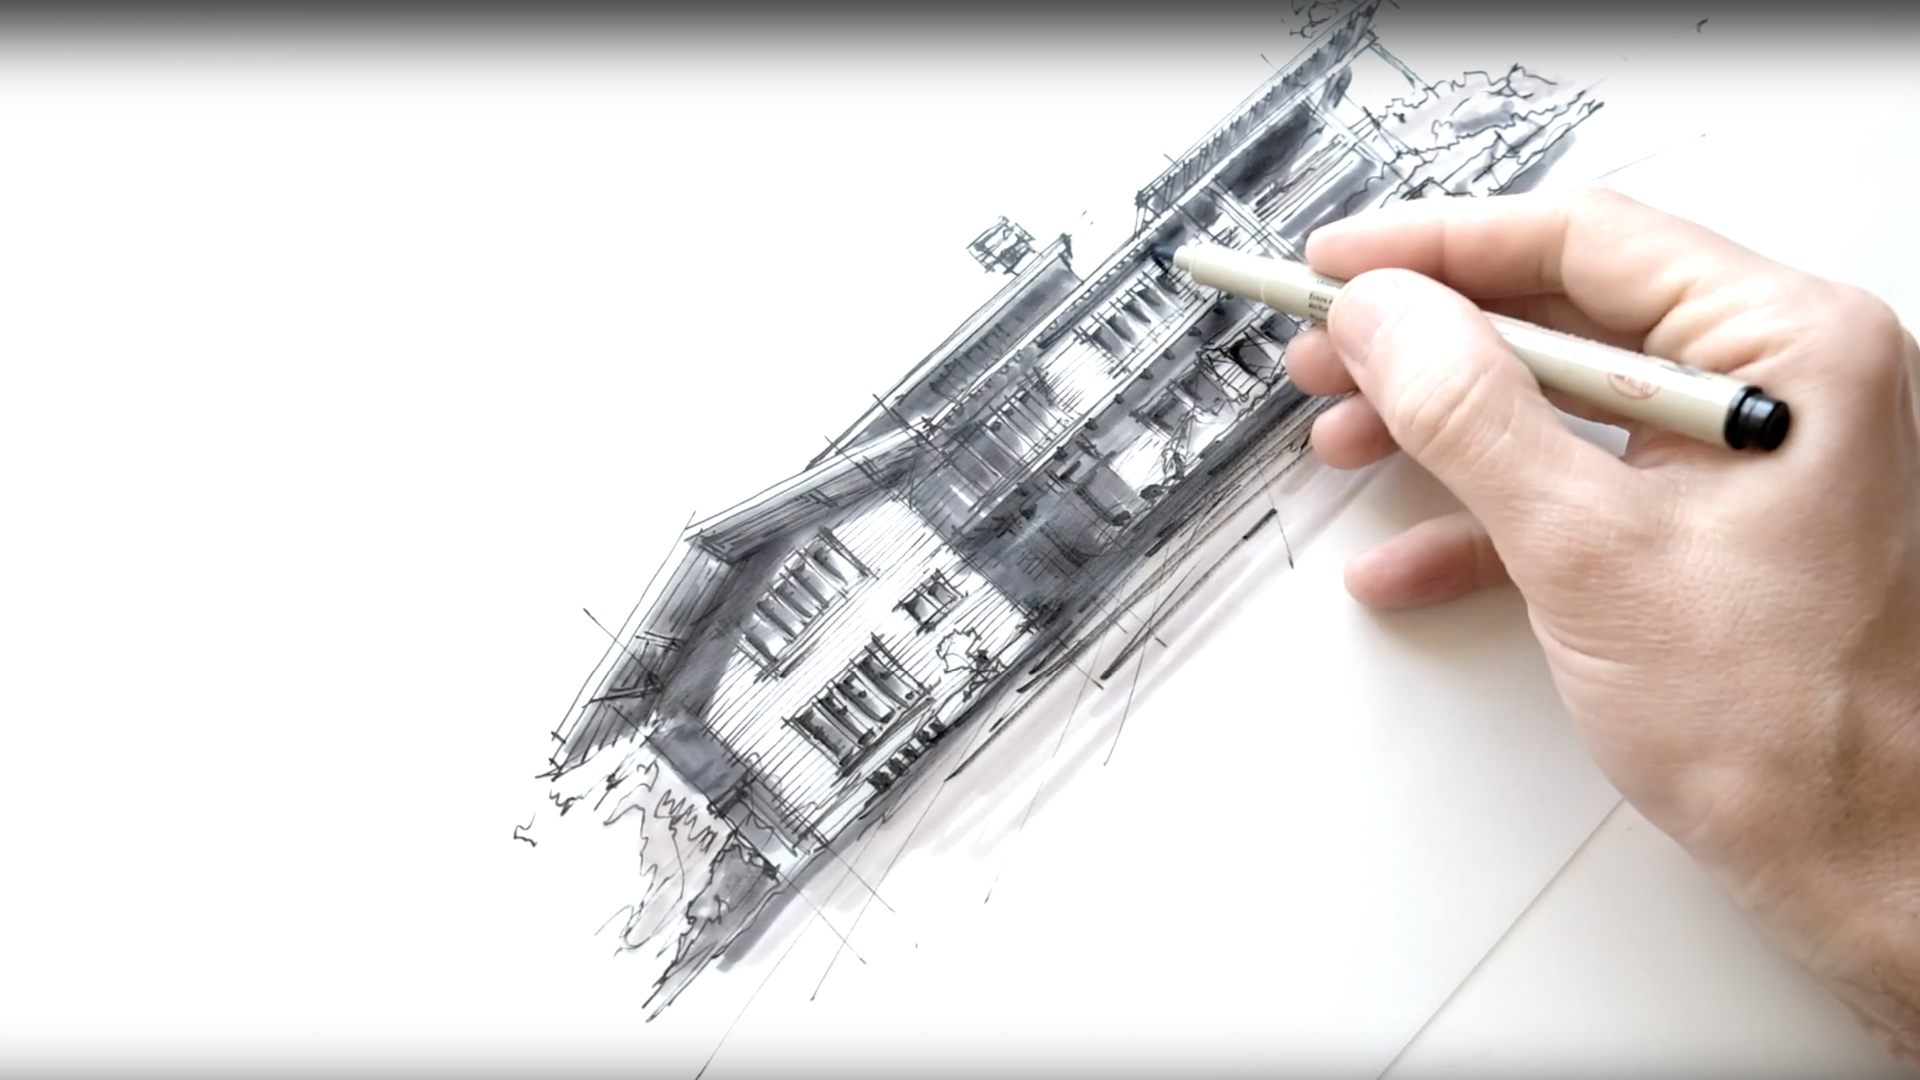 Sketching the Gamble House, California - a drawing tutorial by Dan Hogman